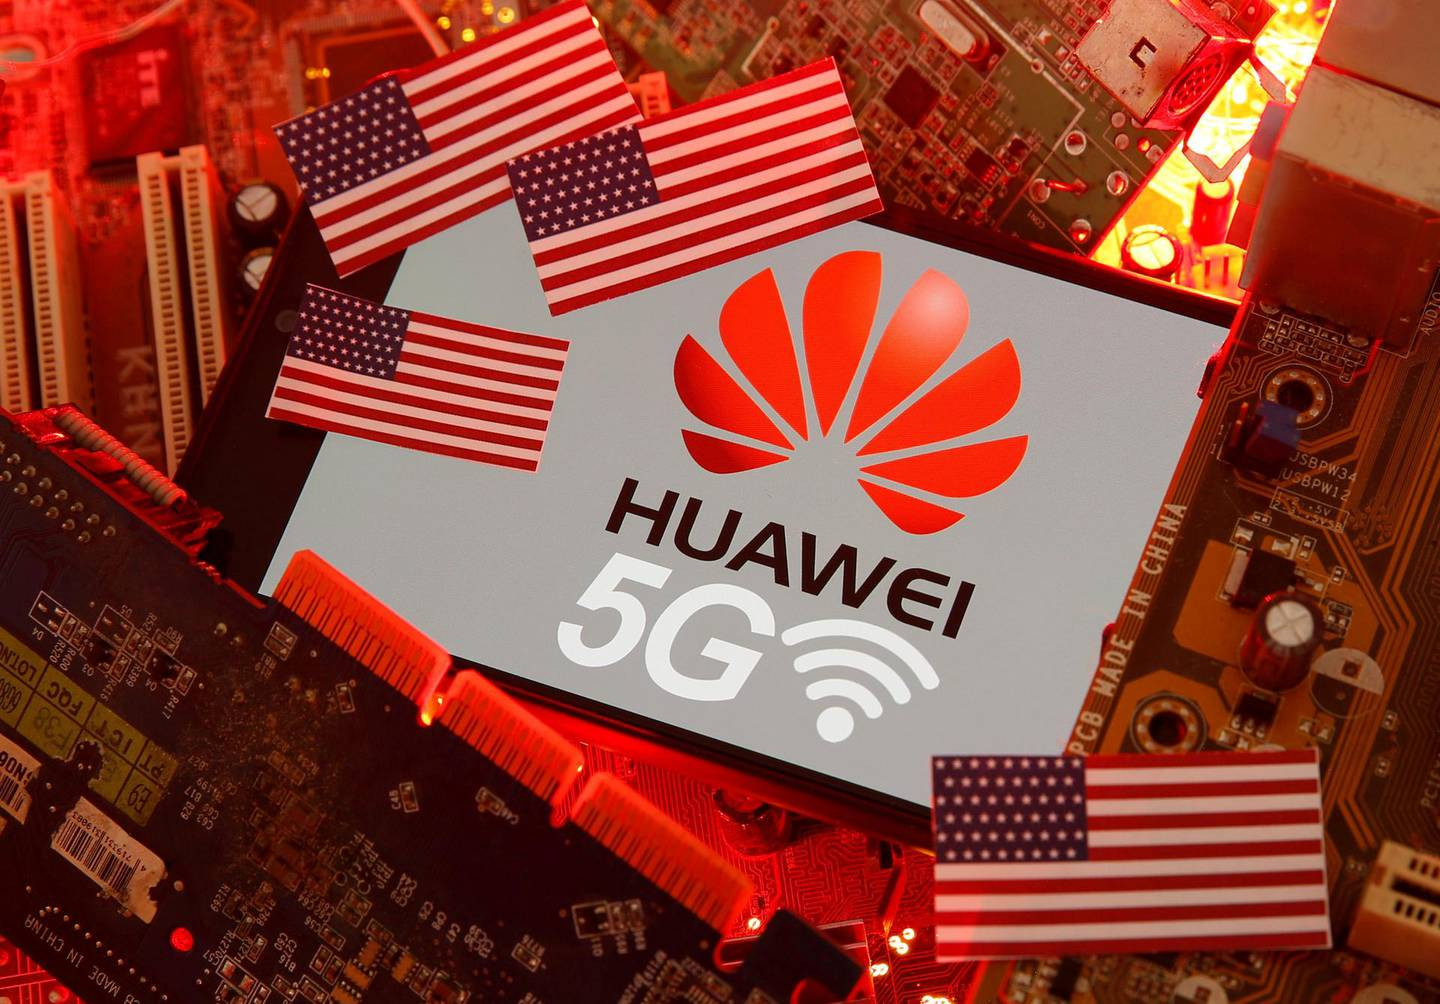 FILE PHOTO: The U.S. flag and a smartphone with the Huawei and 5G network logo are seen on a PC motherboard in this illustration taken January 29, 2020. REUTERS/Dado Ruvic/Illustration/File Photo